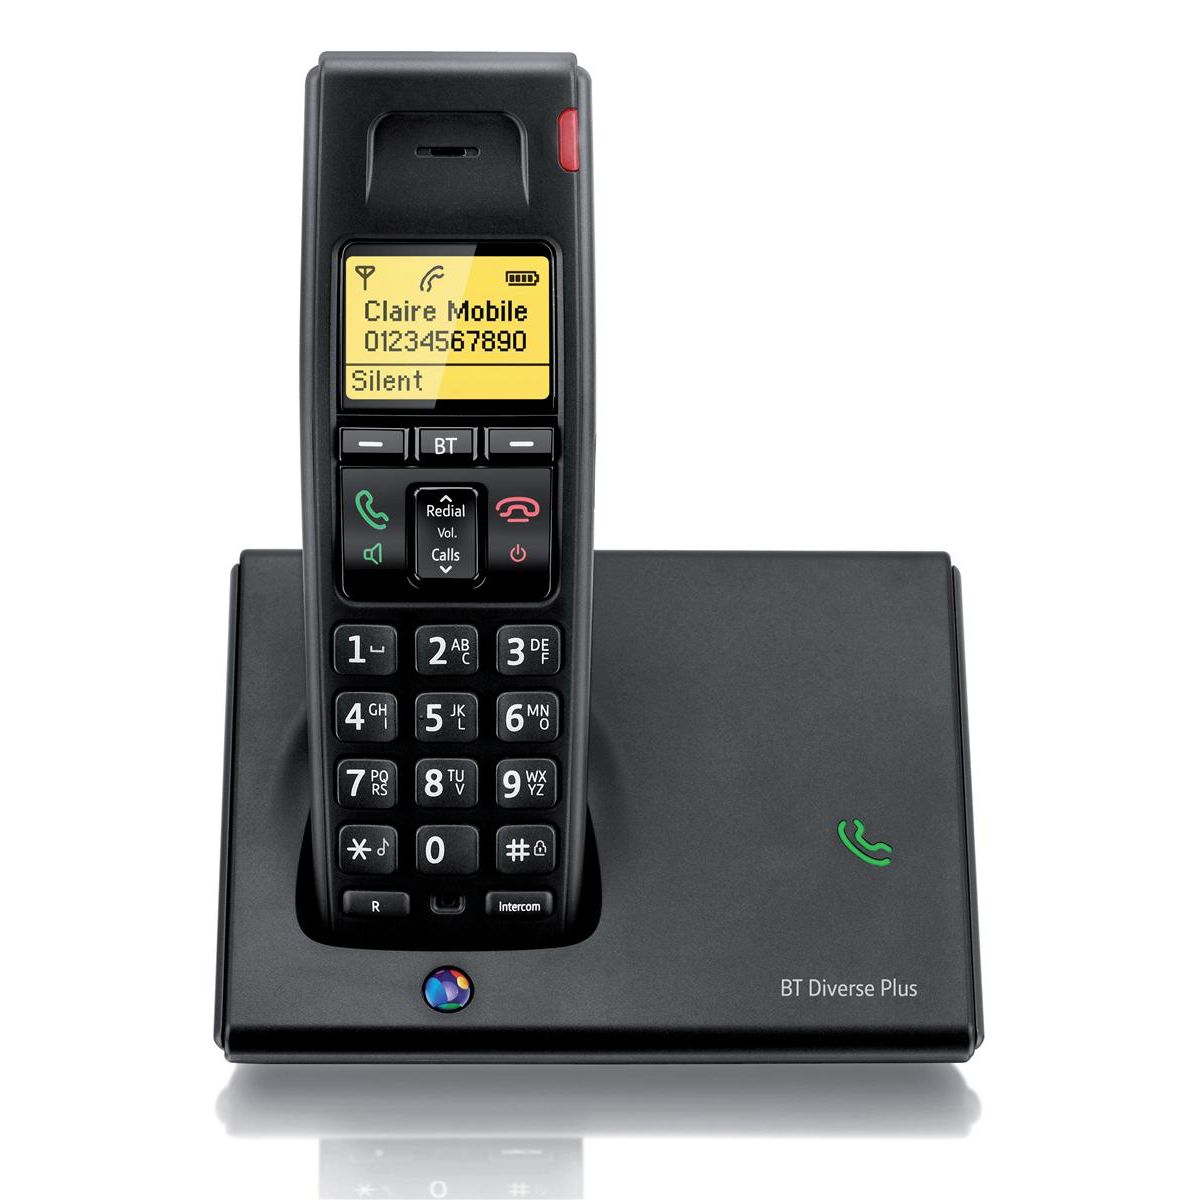 Phone handsets BT Diverse 7110 Plus DECT Telephone Cordless GAP SMS 100-entry Directory 10 Redials Ref 060743